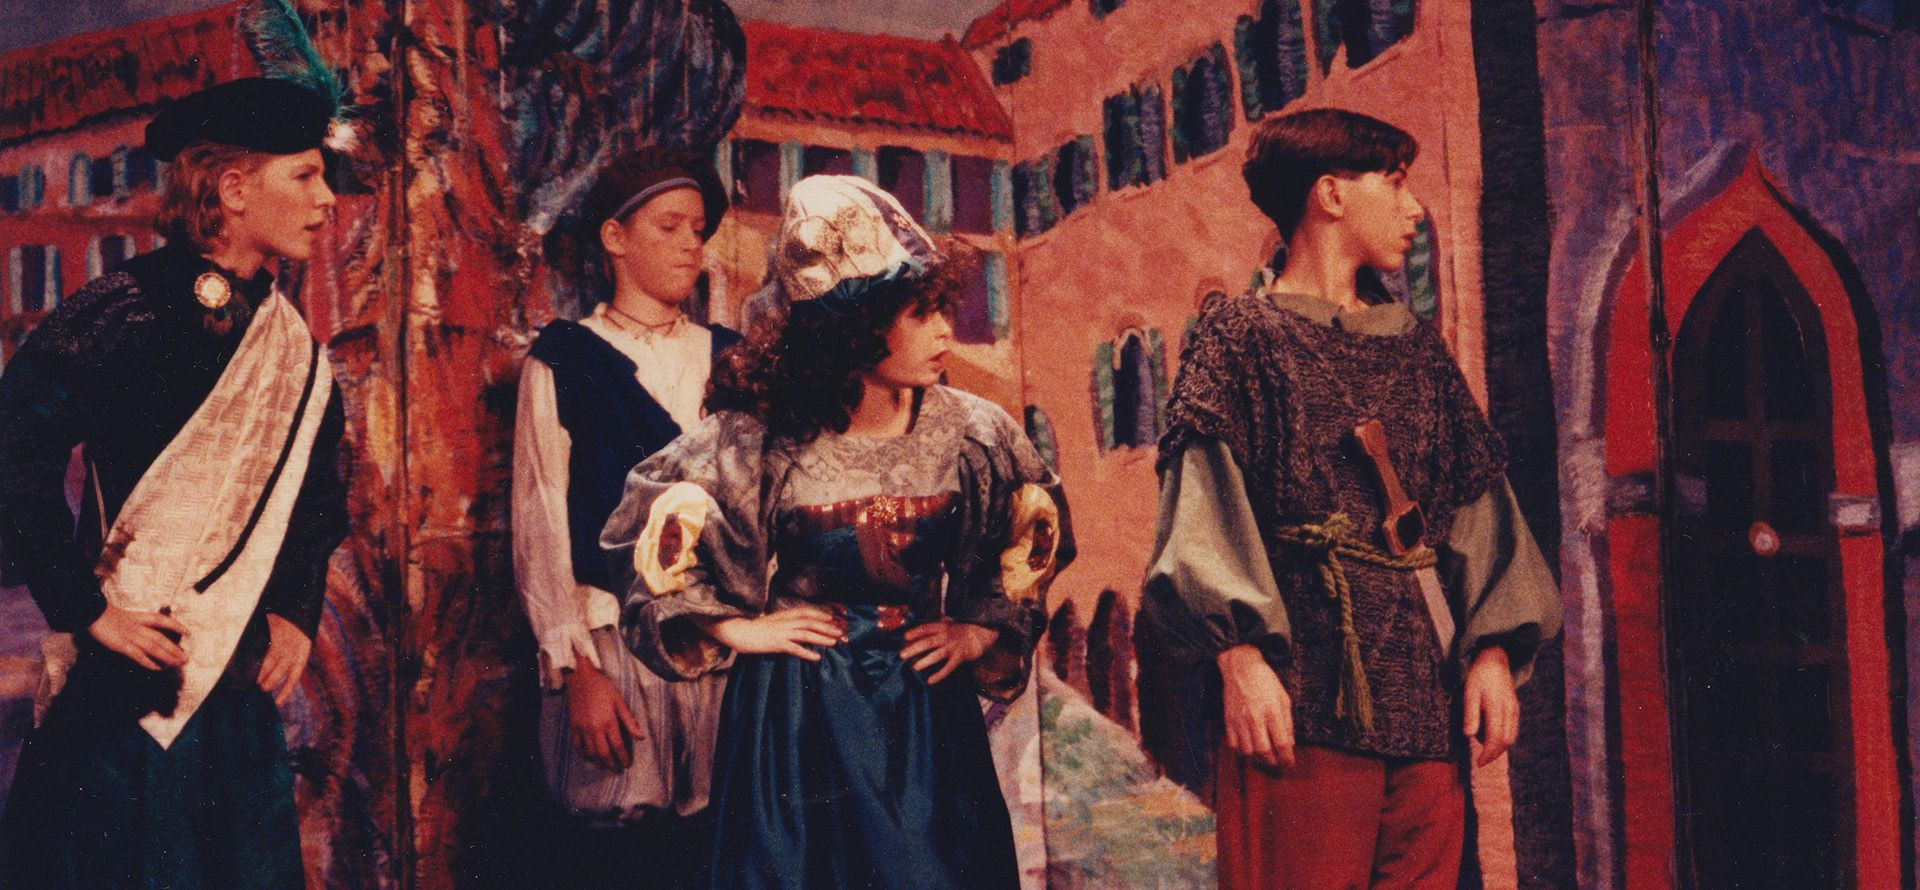 1991, The Taming of the Shrew